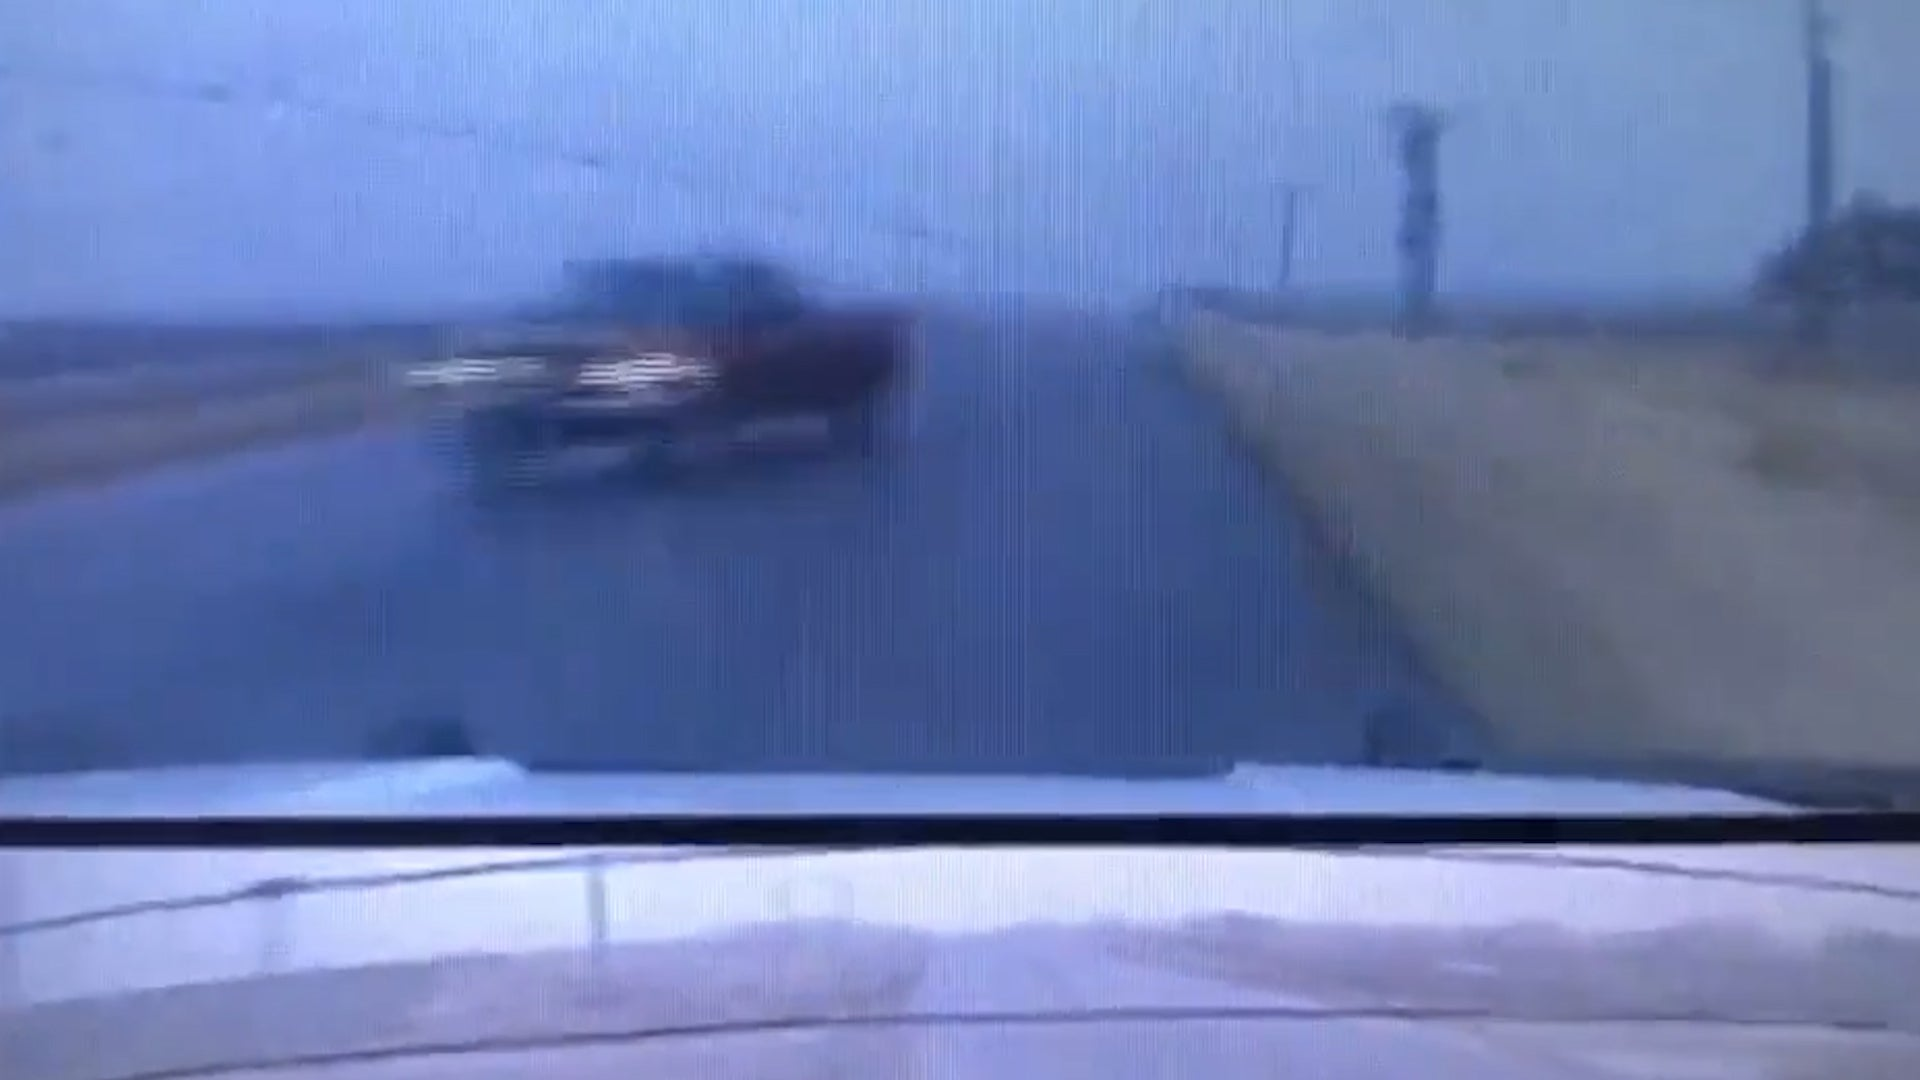 Kansas State Trooper Narrowly Avoids Collision on Rainy Road